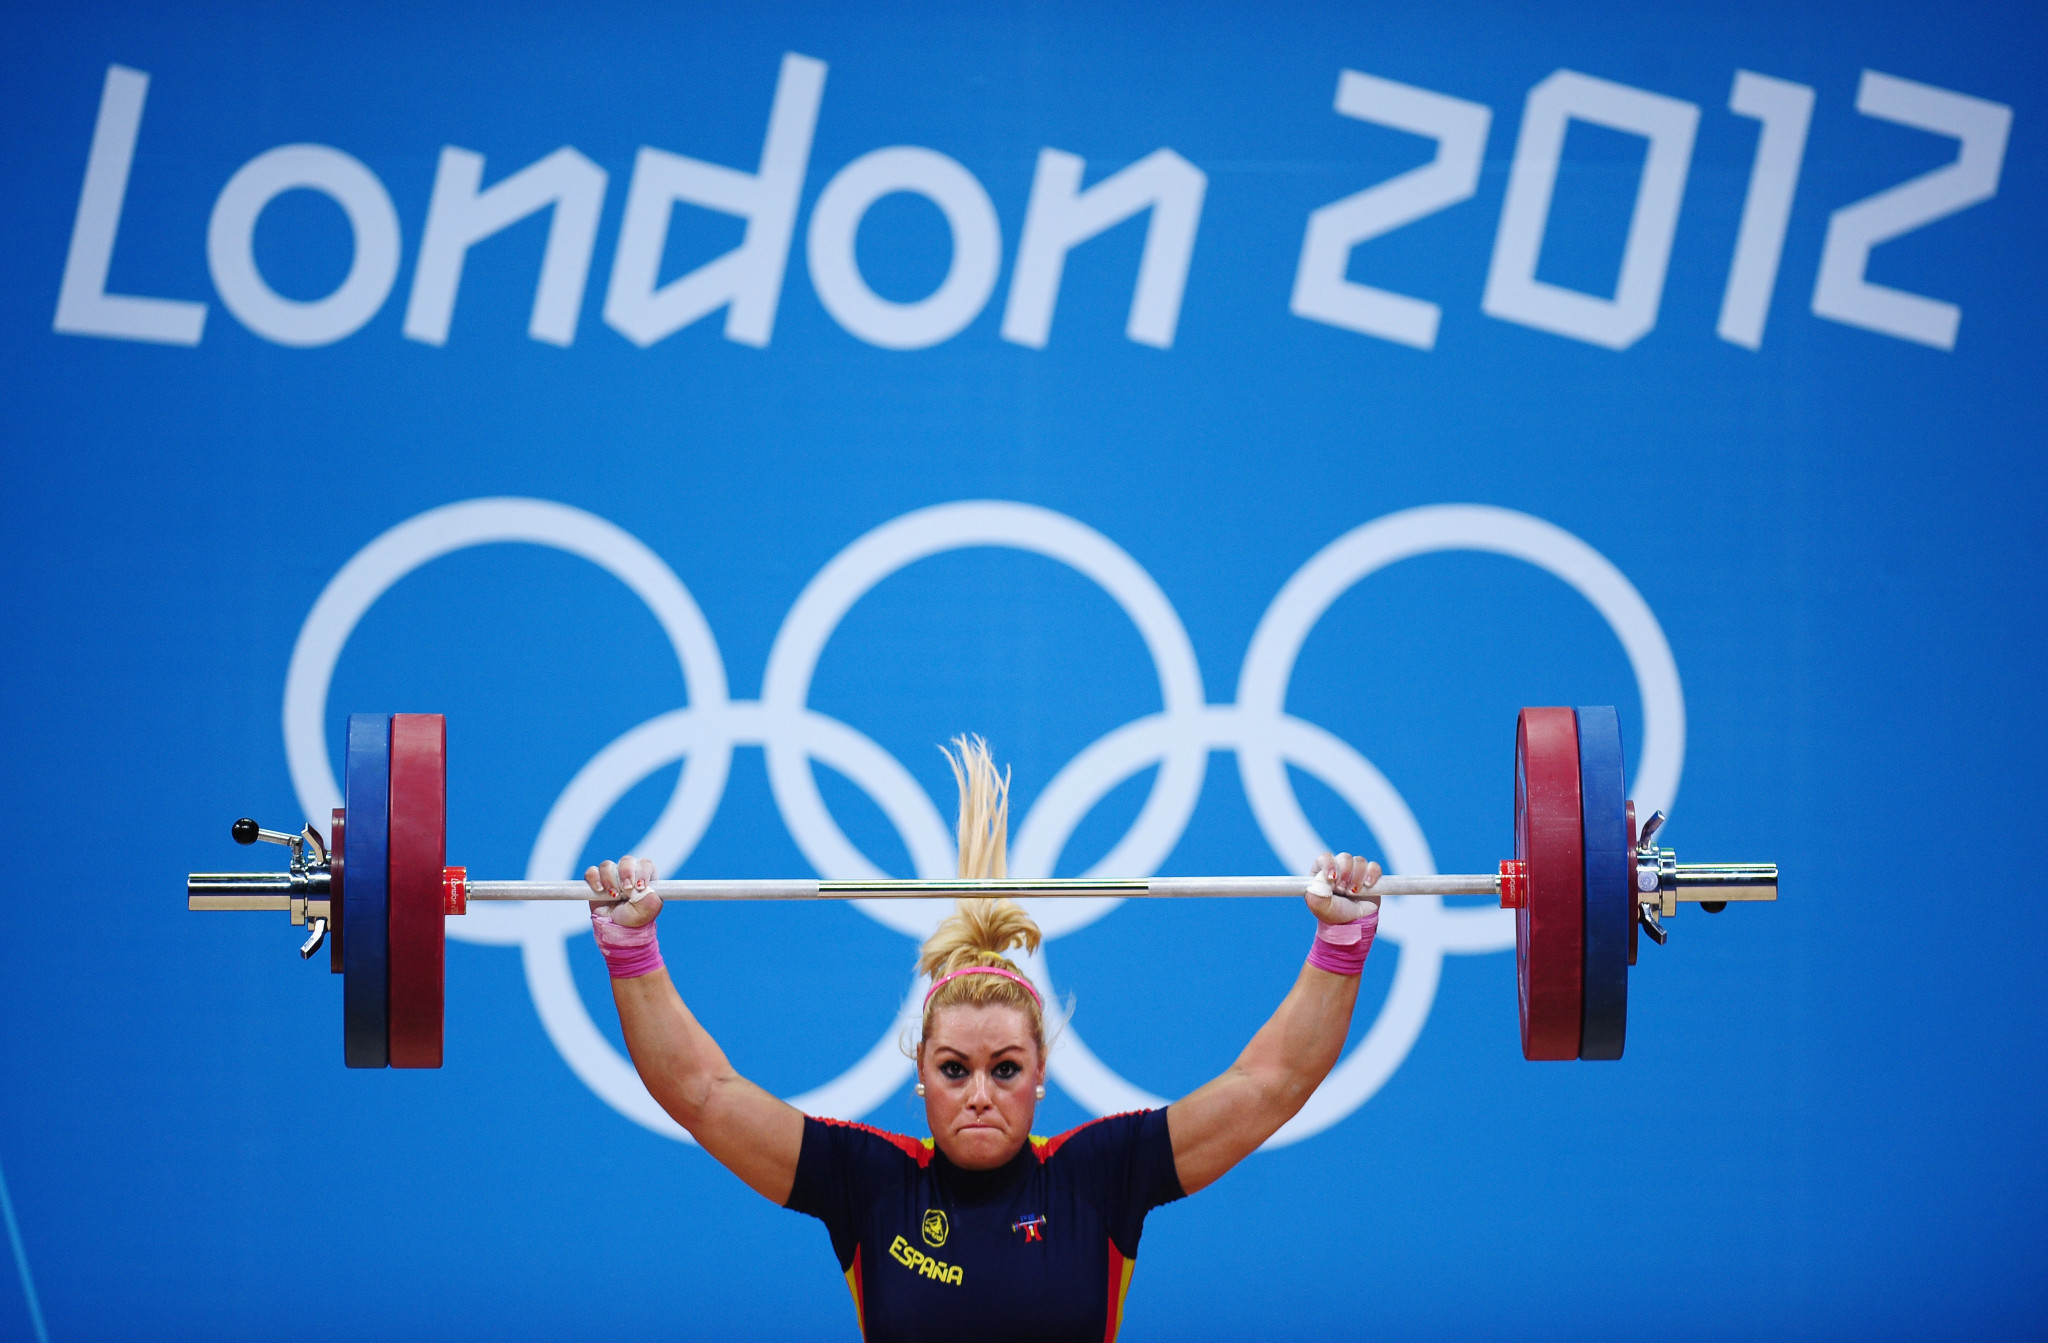 Lidia Valentín had originally finished fourth in the women's 75kg category at London 2012 ©Getty Images